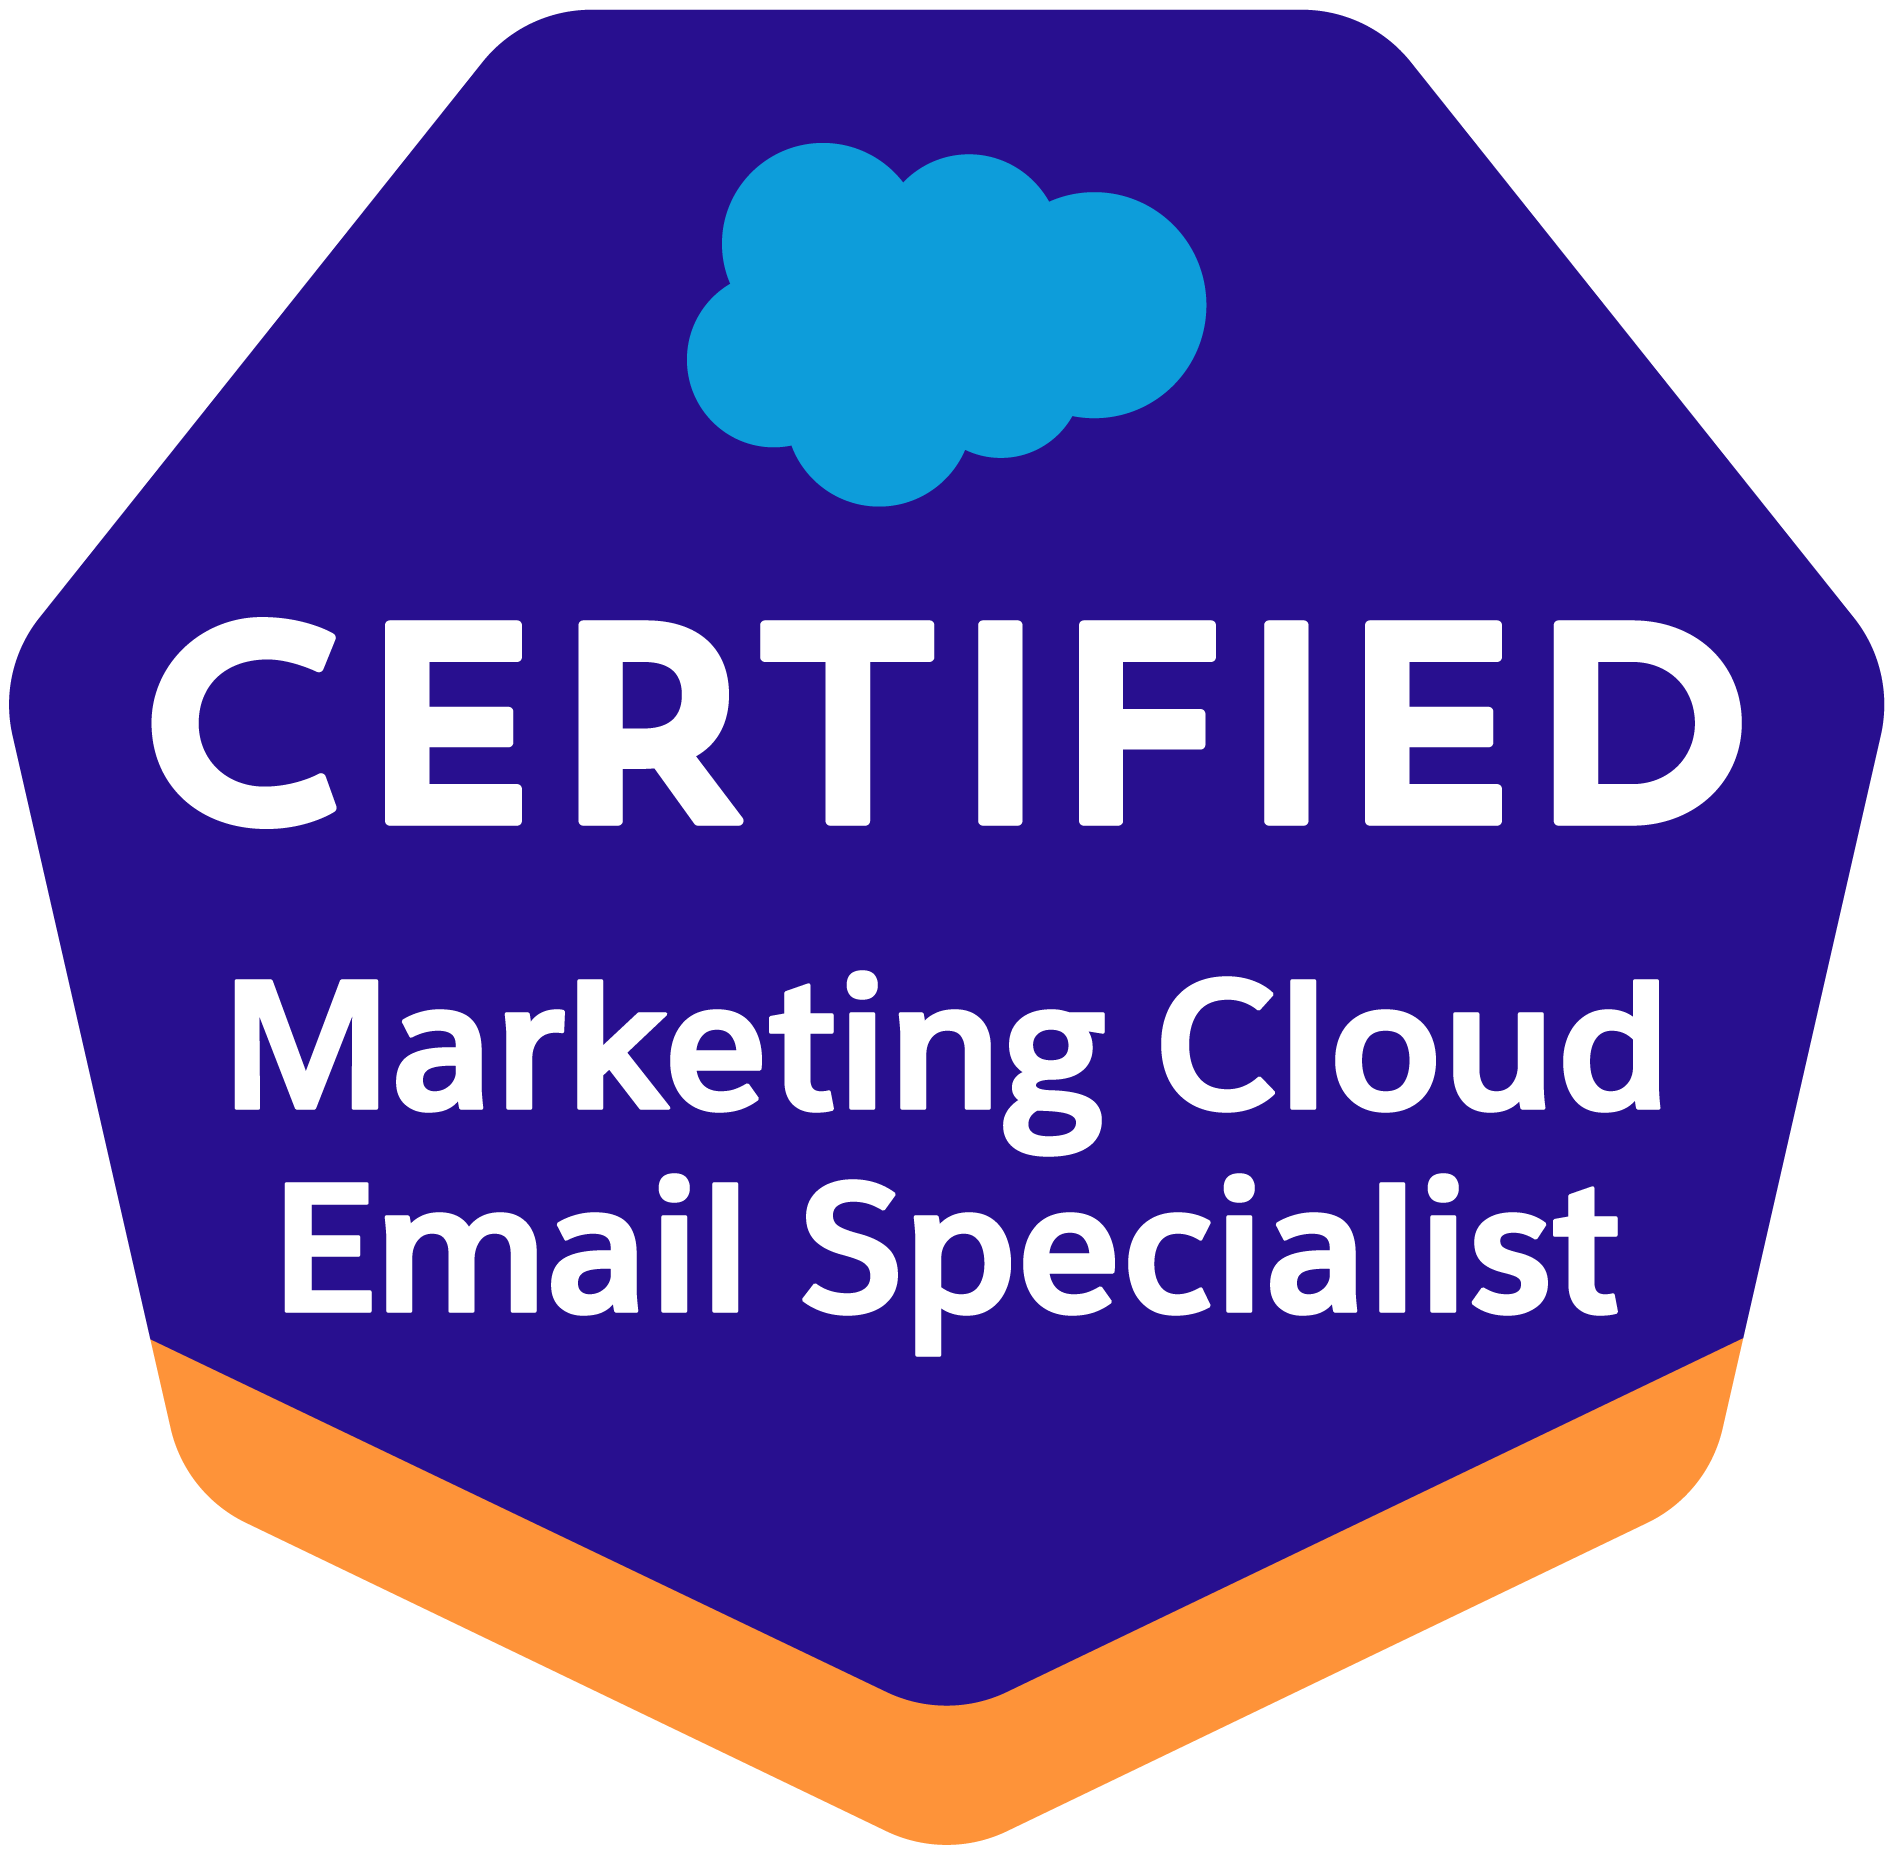 Logo-Certified_Marketing-Cloud-Email-Specialist